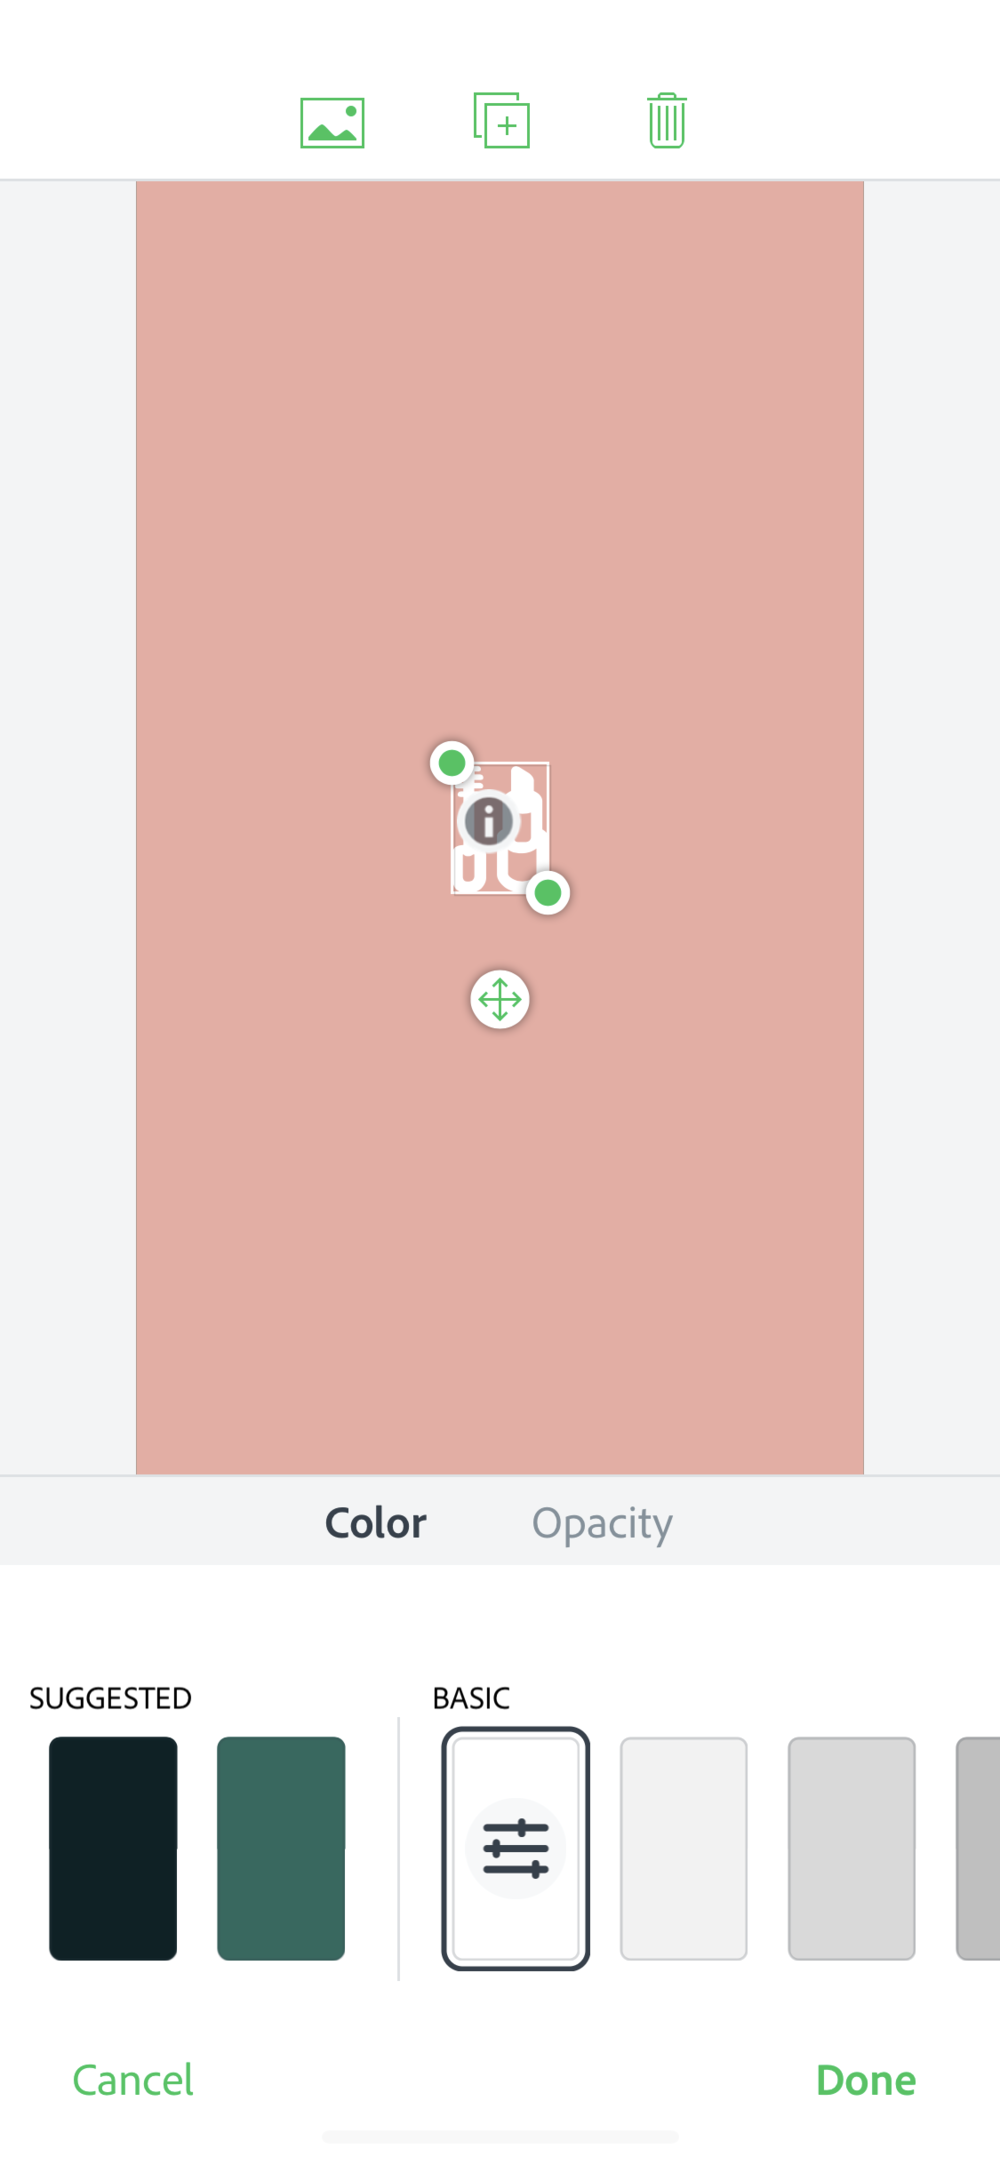 Step 9: - Size the icon and center it. Again, this is super easy as it's just drop and drag.